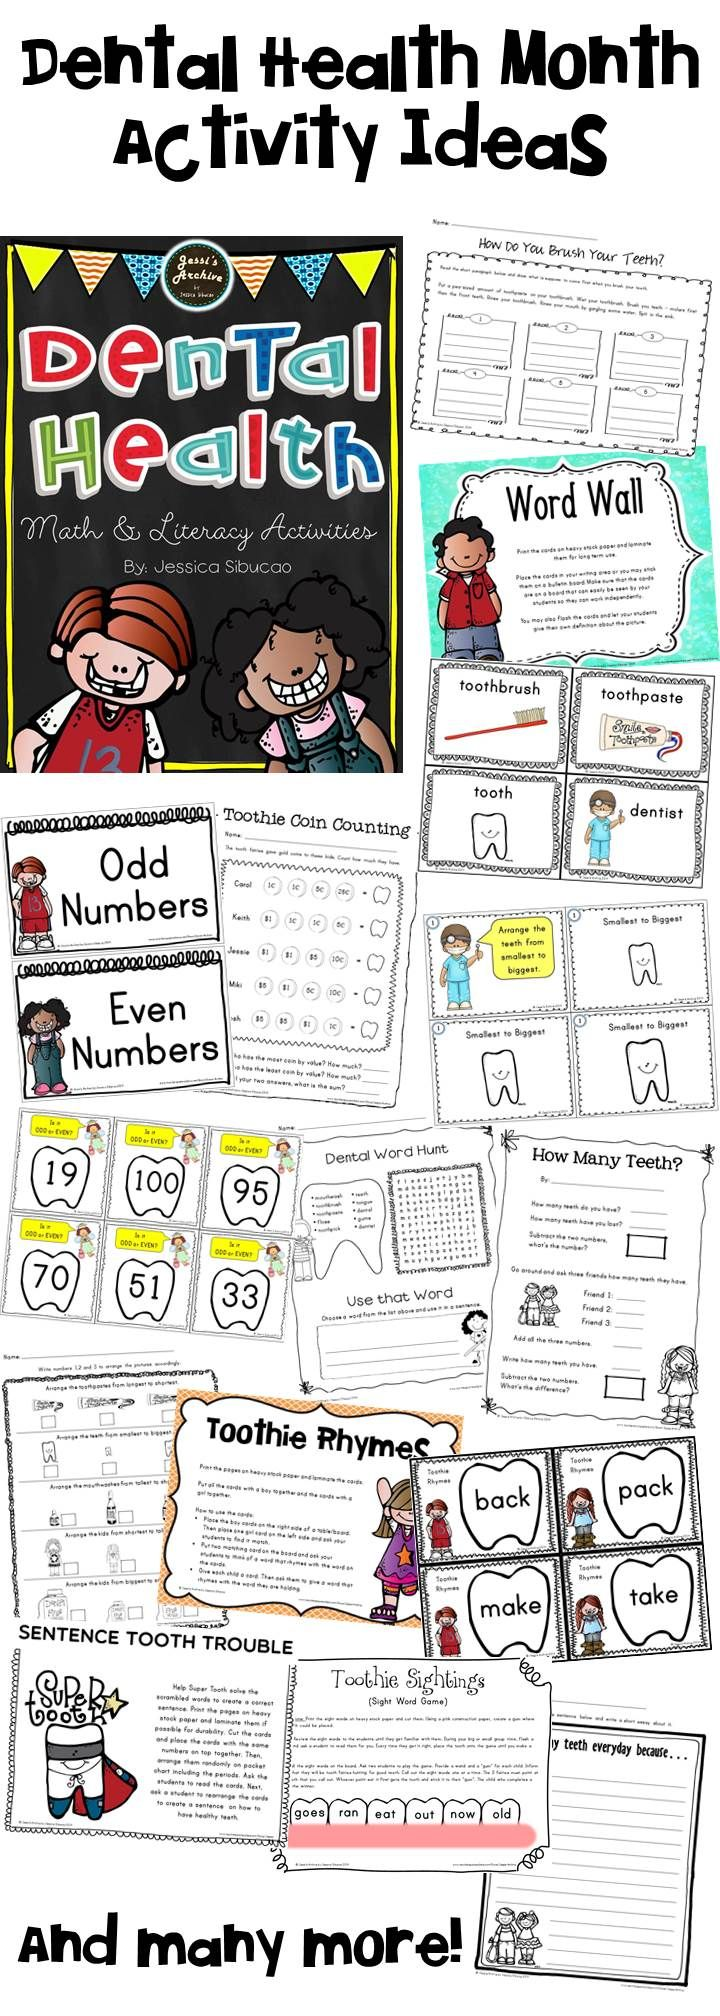 Dental Health - This pack will help you and your students learn about dental health through worksheets, activities, cards, etc. Aligned with Common Core Standards, this includes literacy and math activities for your small and big groups. Through this packet, your children will get a chance to sort, draw, write, play and more!